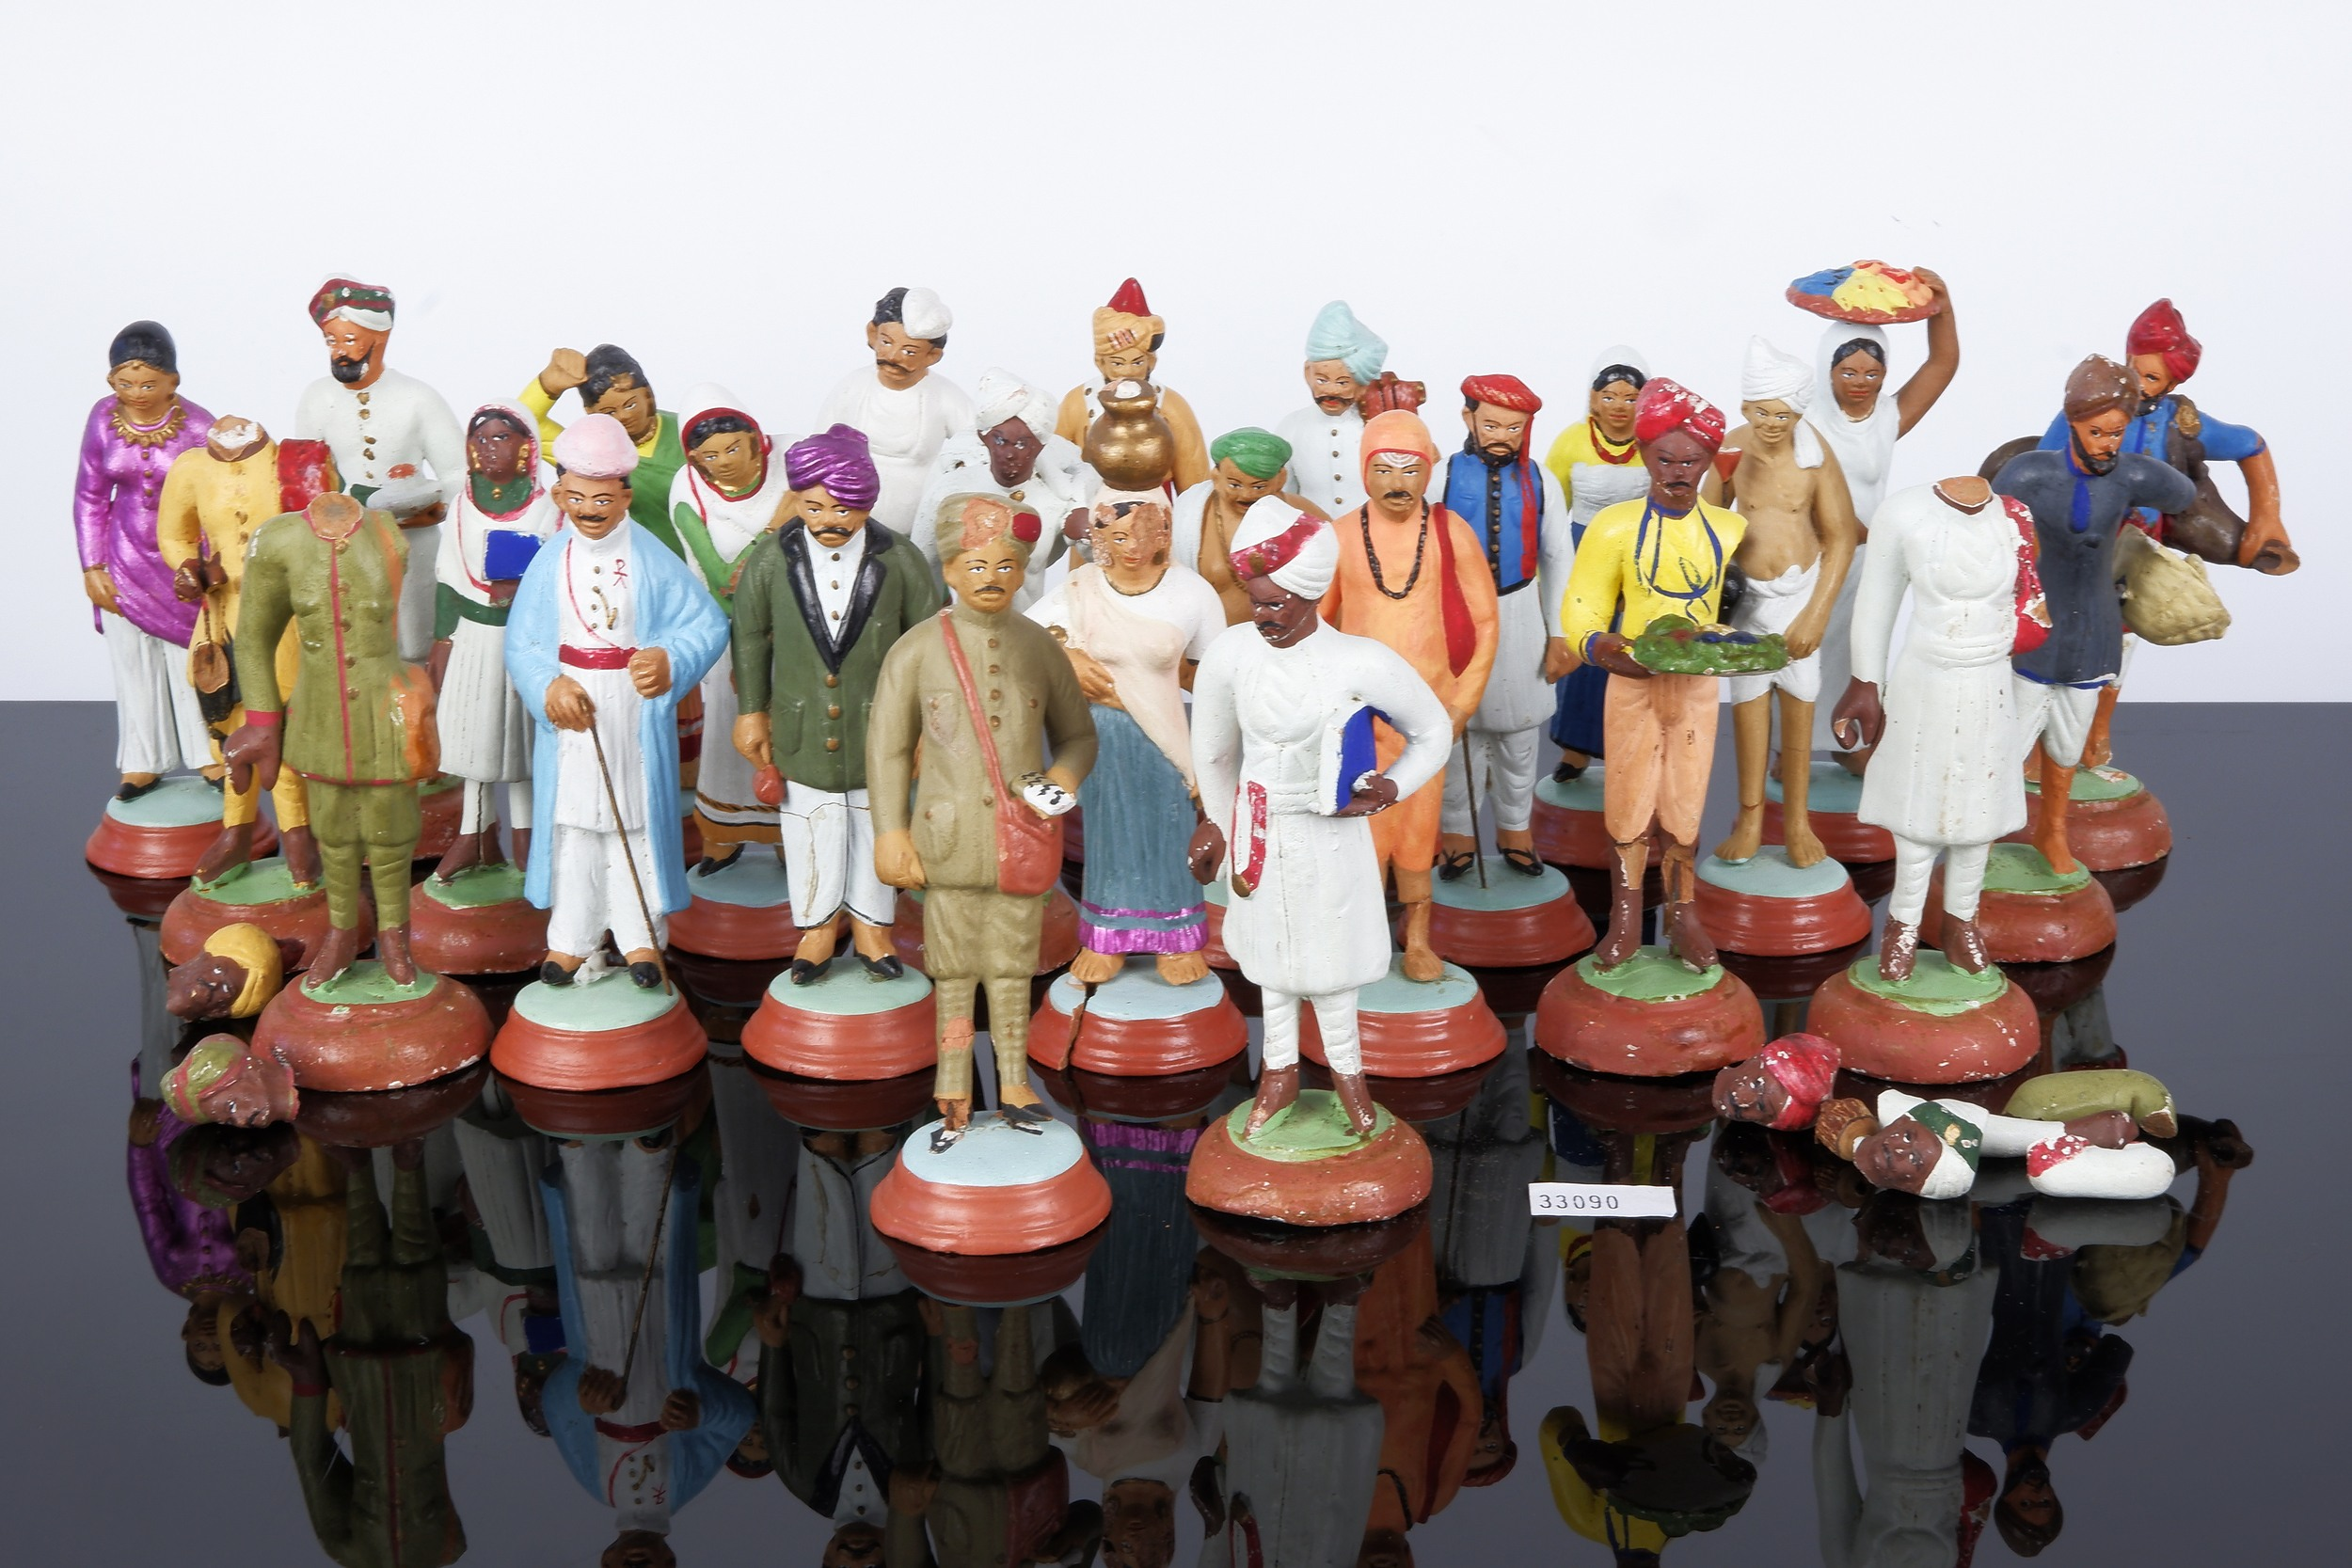 'Unusual Collection of Antique Indian Polychrome Painted Toy Figures'